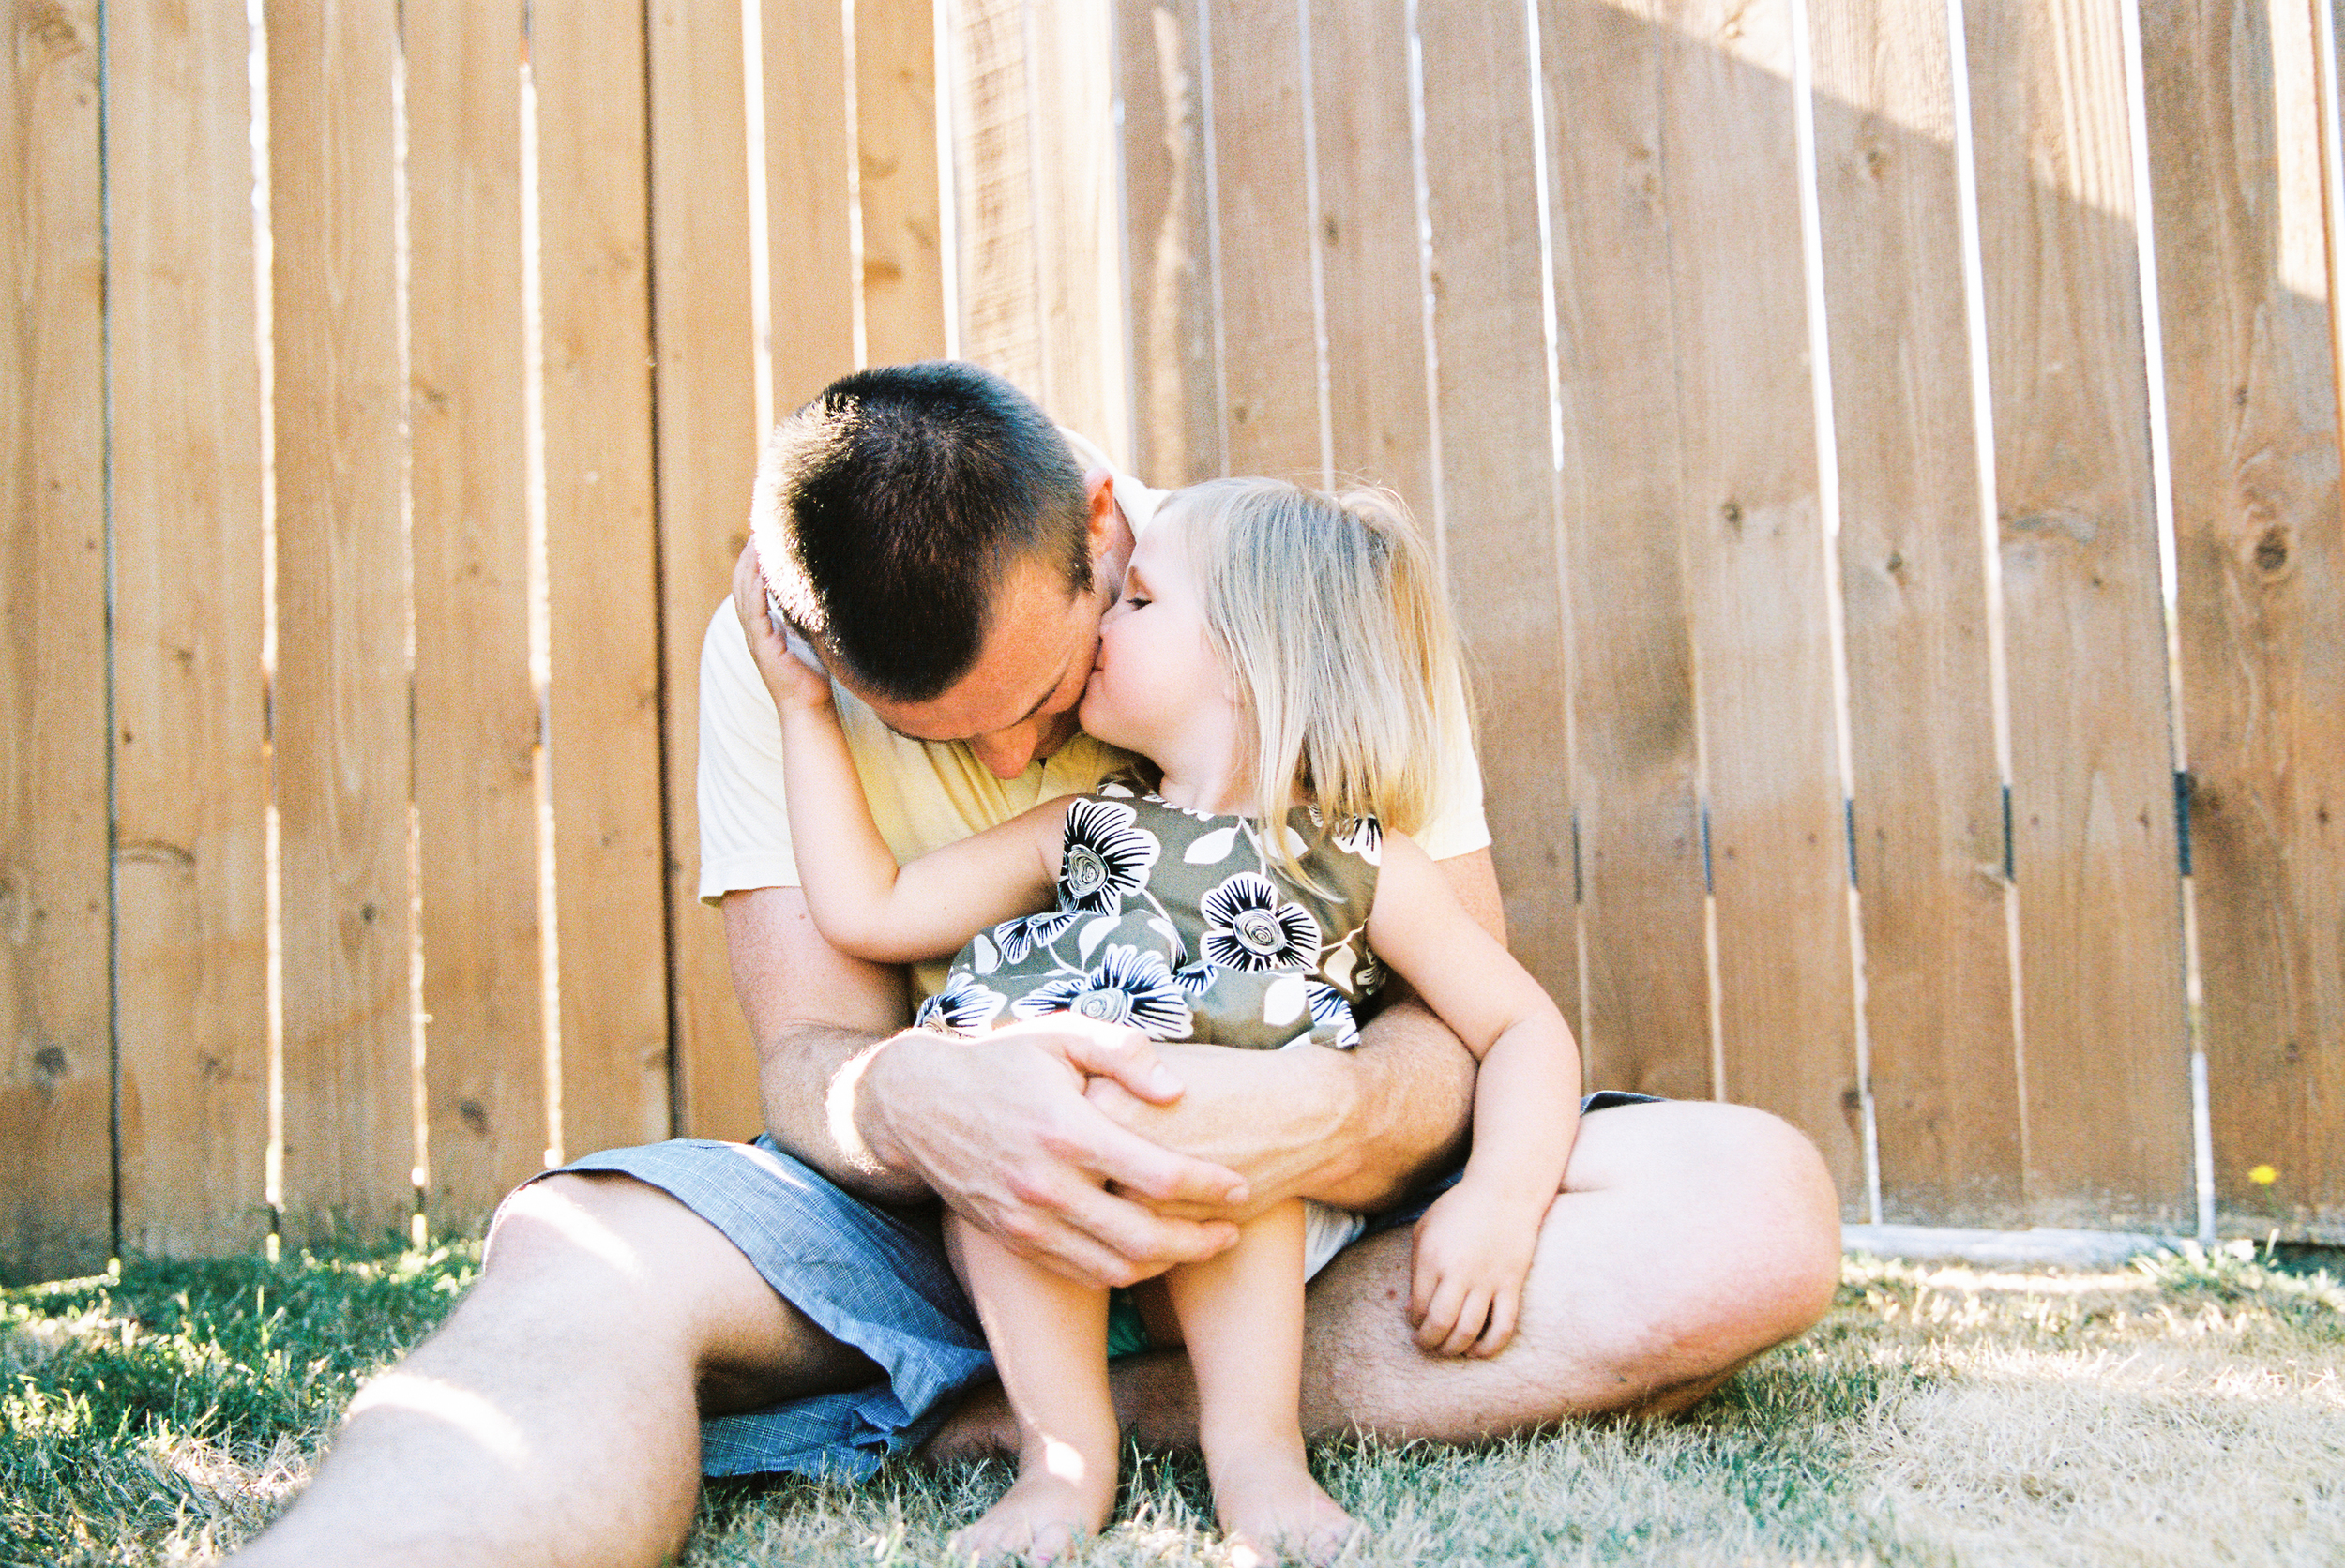 seattle newborn family photographer film photography family home natural light baby kodak portra 400 portrait